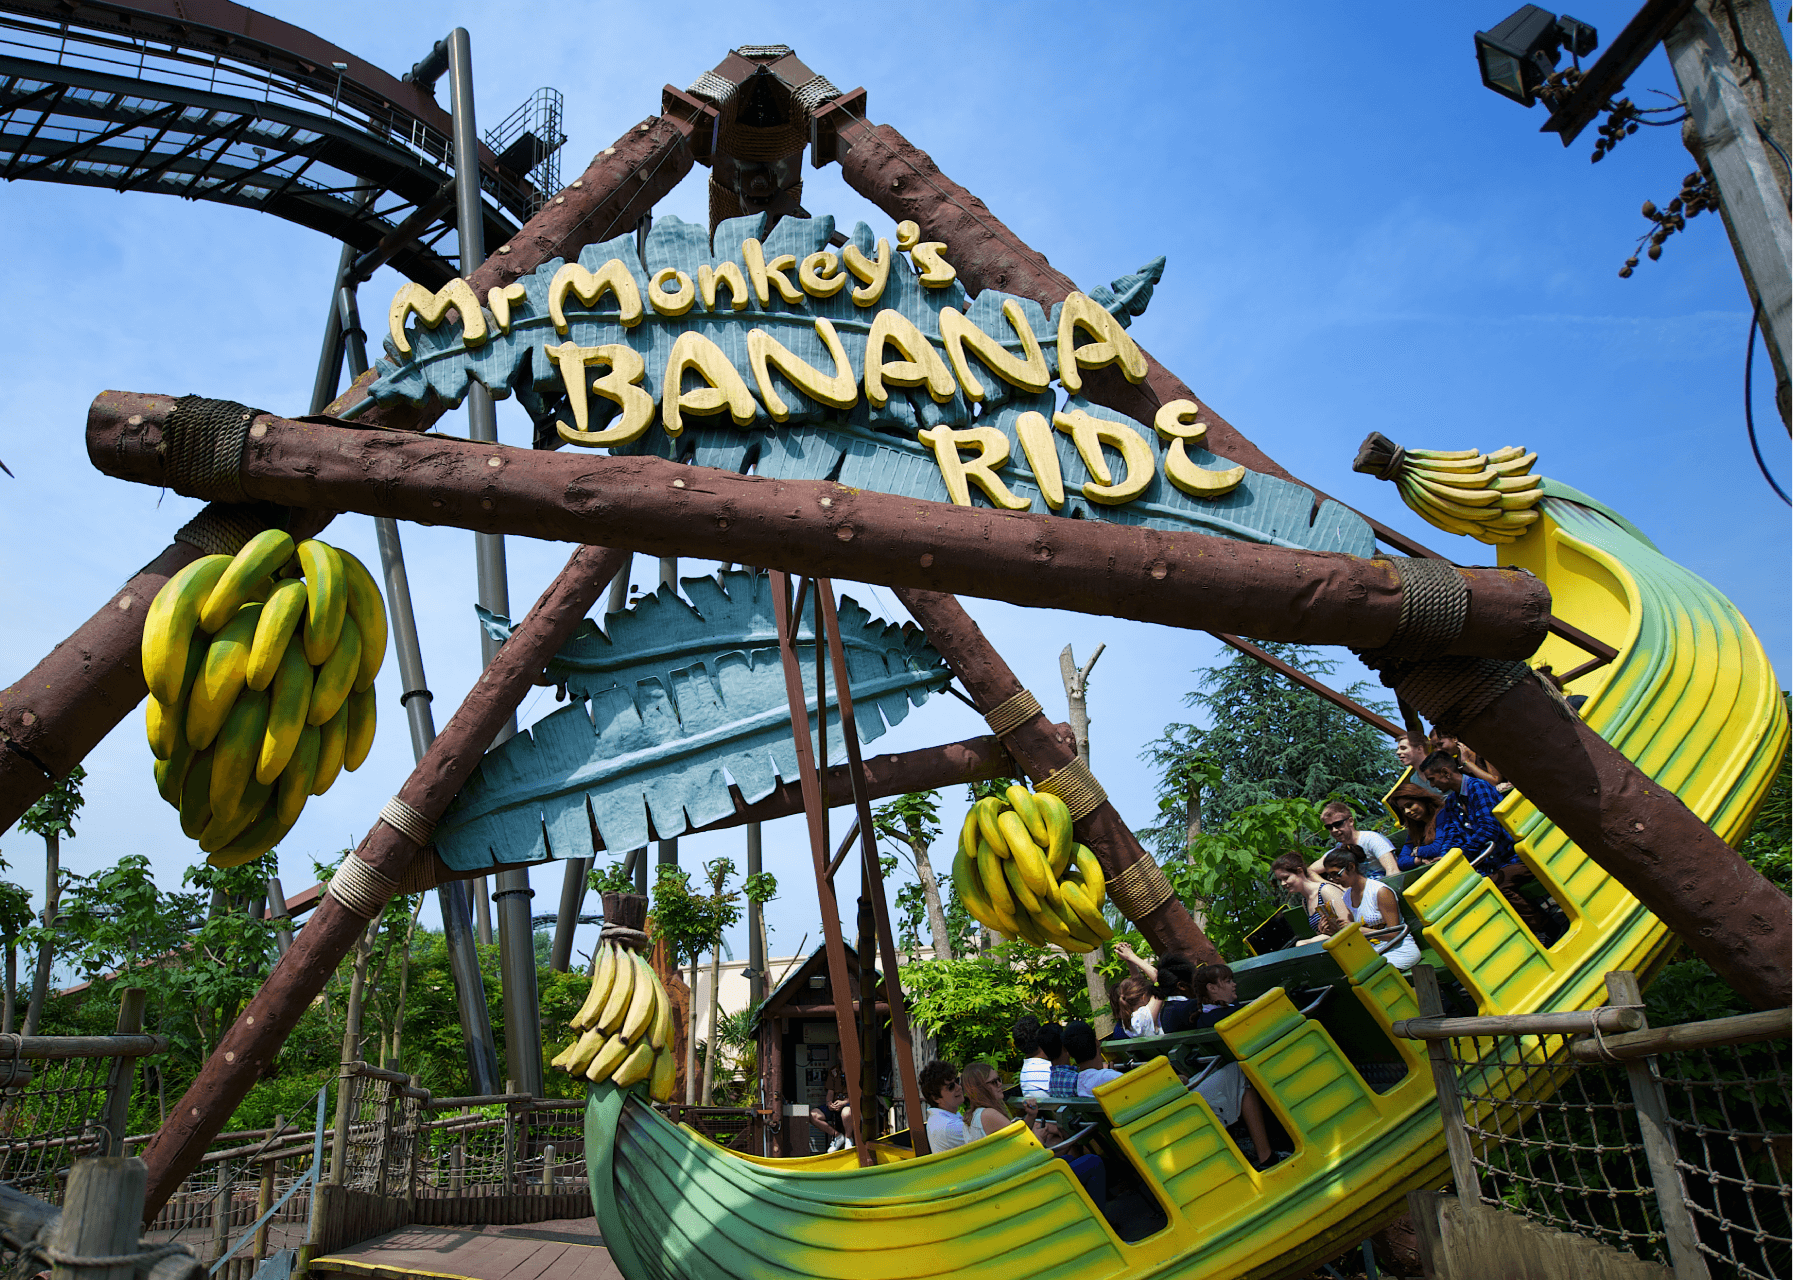 Mr Monkeys Banana Ride Thorpe Park Overview